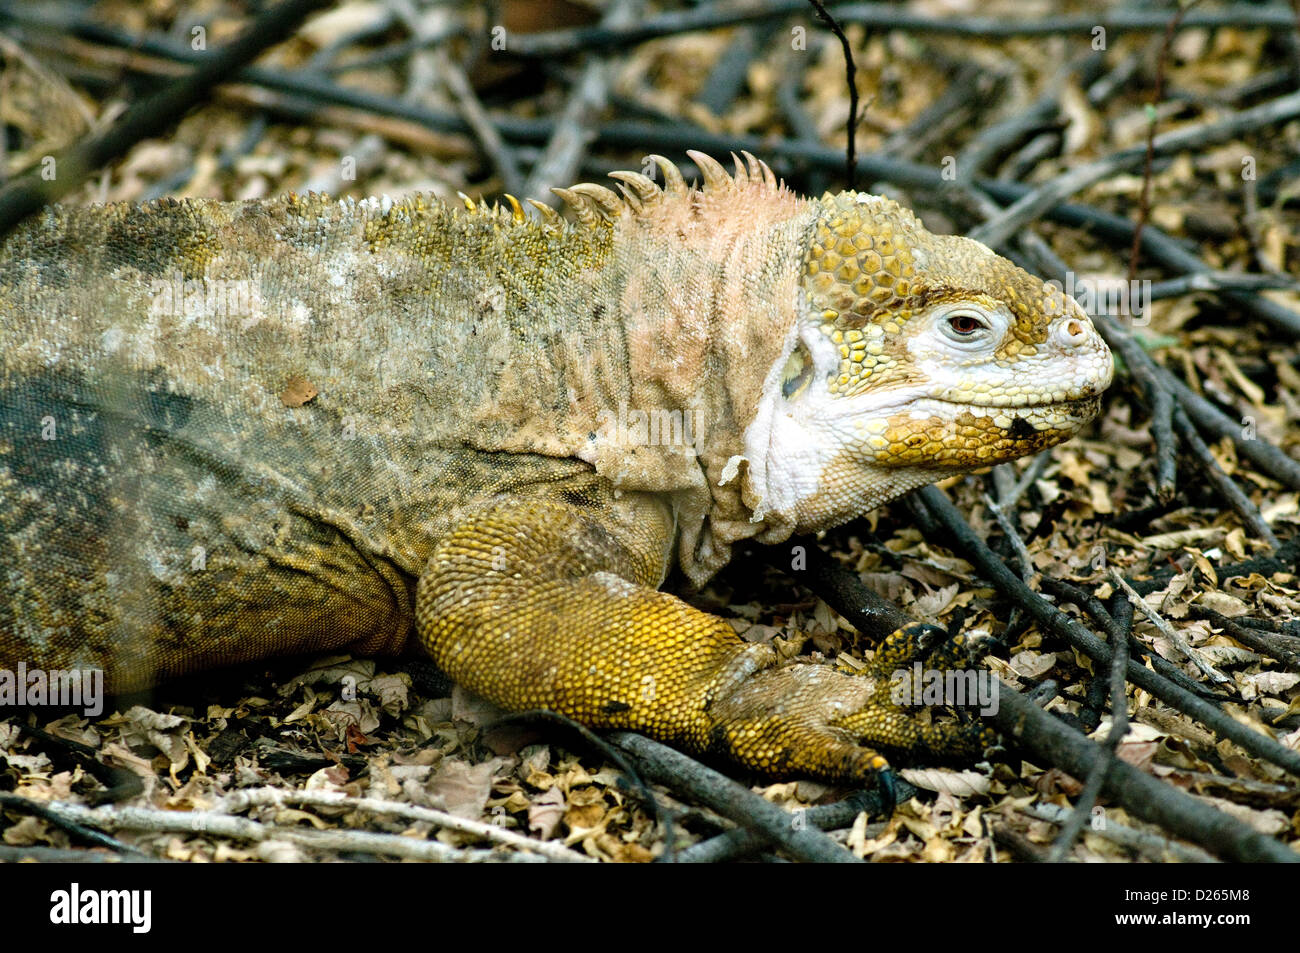 A nesting Galapagos land iguana, monster lizard endemic to the fantastical islands, appears to be sloughing its - Stock Image